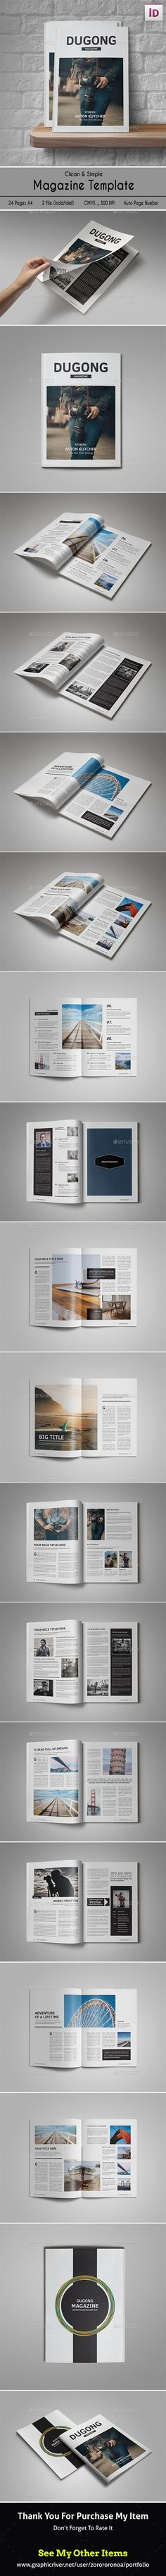 Clean & Simple Magazine Template 	InDesign INDD. Download here: https://graphicriver.net/item/clean-simple-magazine/17364575?ref=ksioks